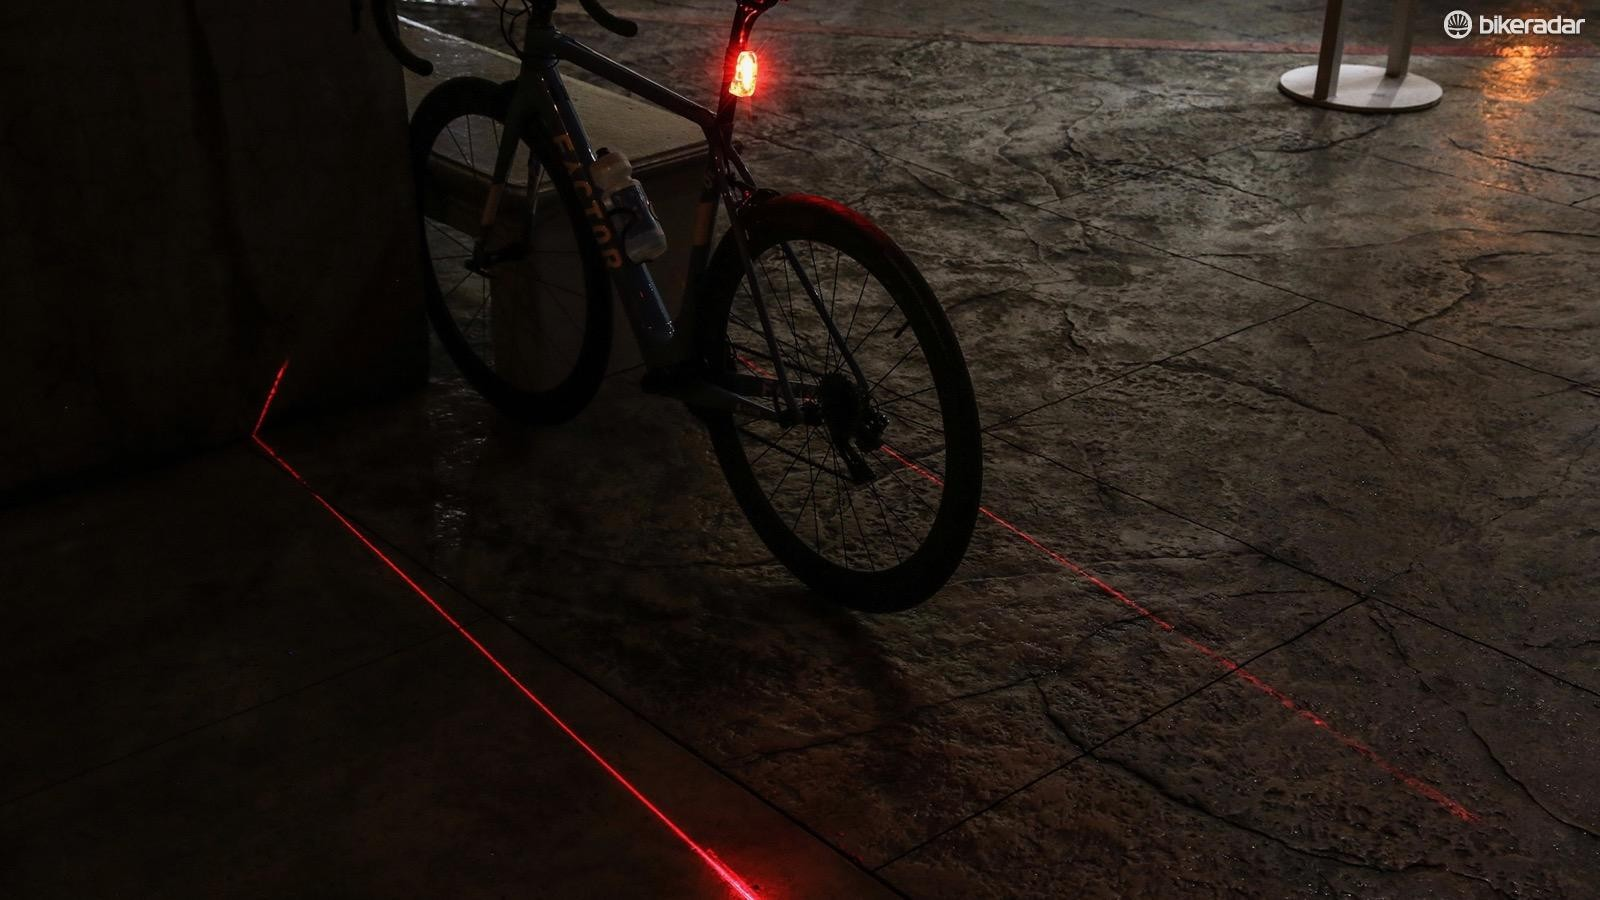 The ground laser lights extend back about twice the length of the bike